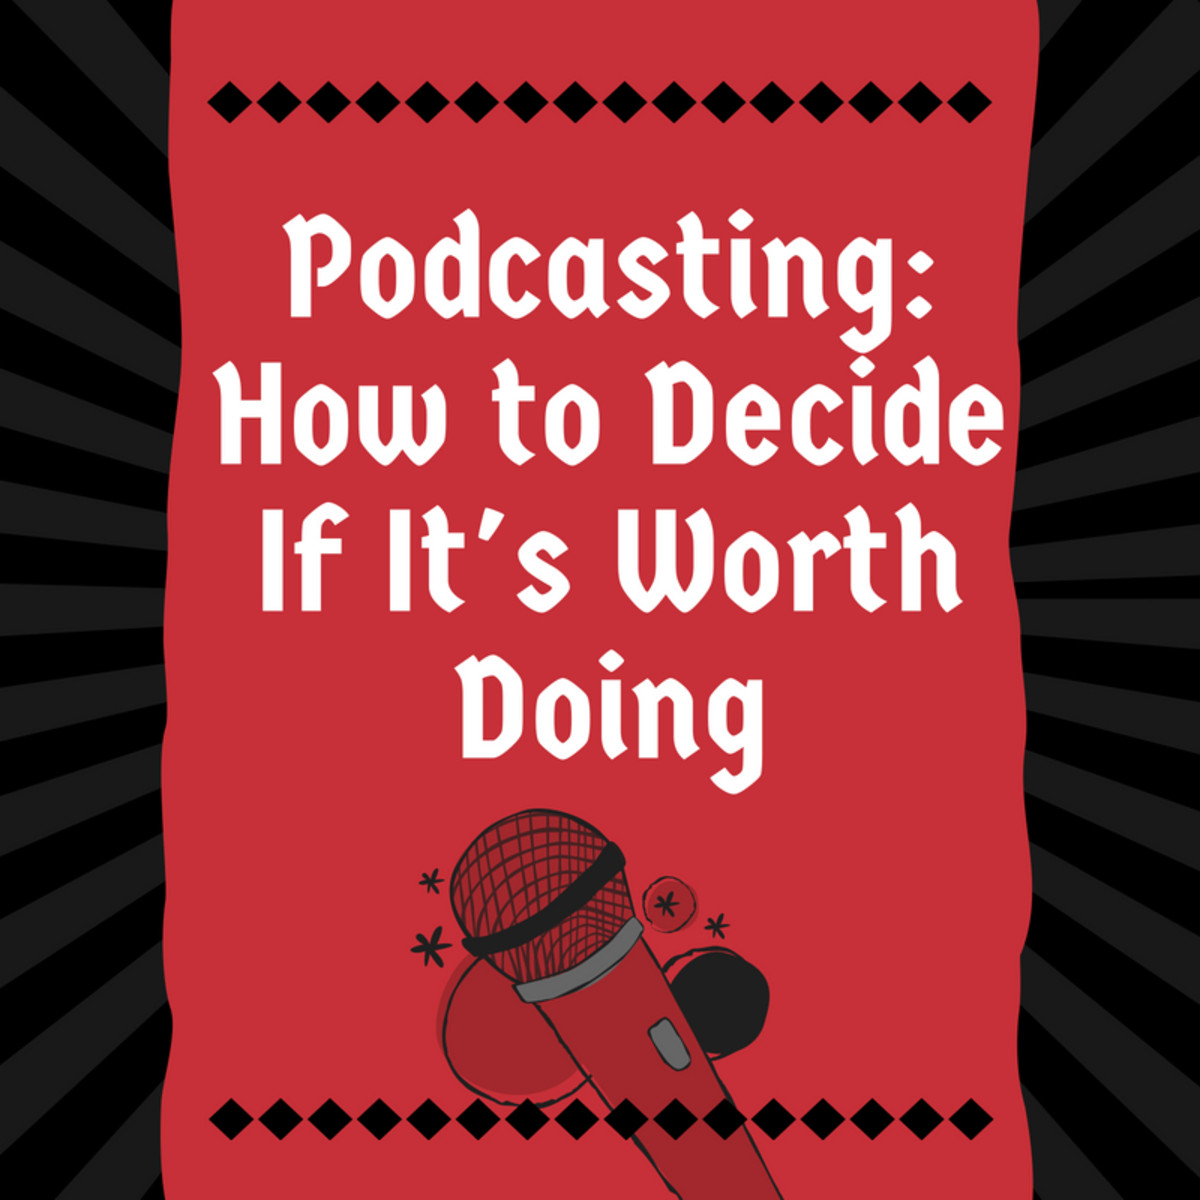 Podcasting: How to Decide If It's Worth Doing